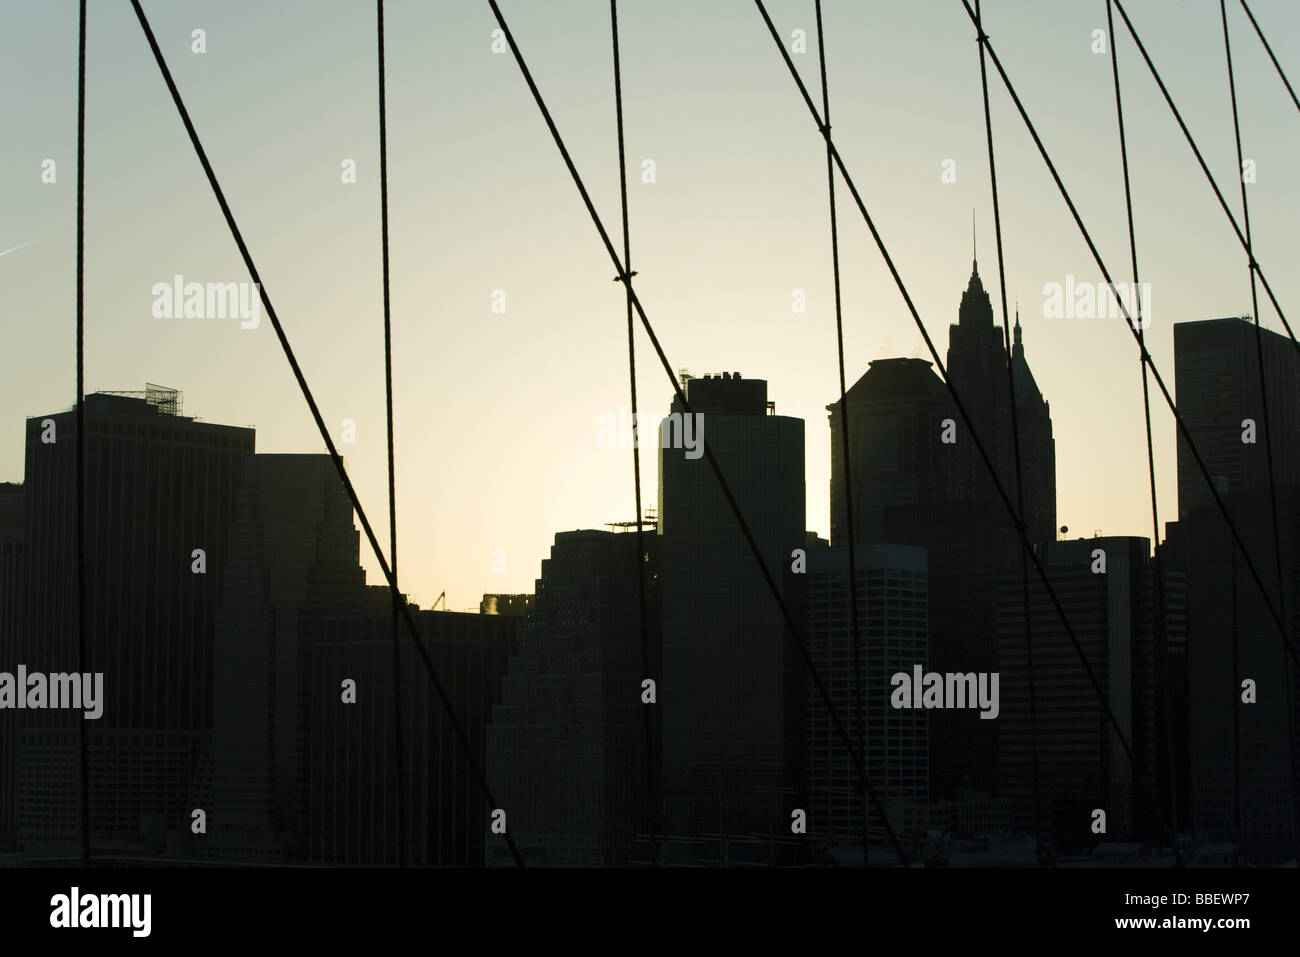 United States, New York City, silhouette of Manhattan skyline seen through Brooklyn Bridge - Stock Image